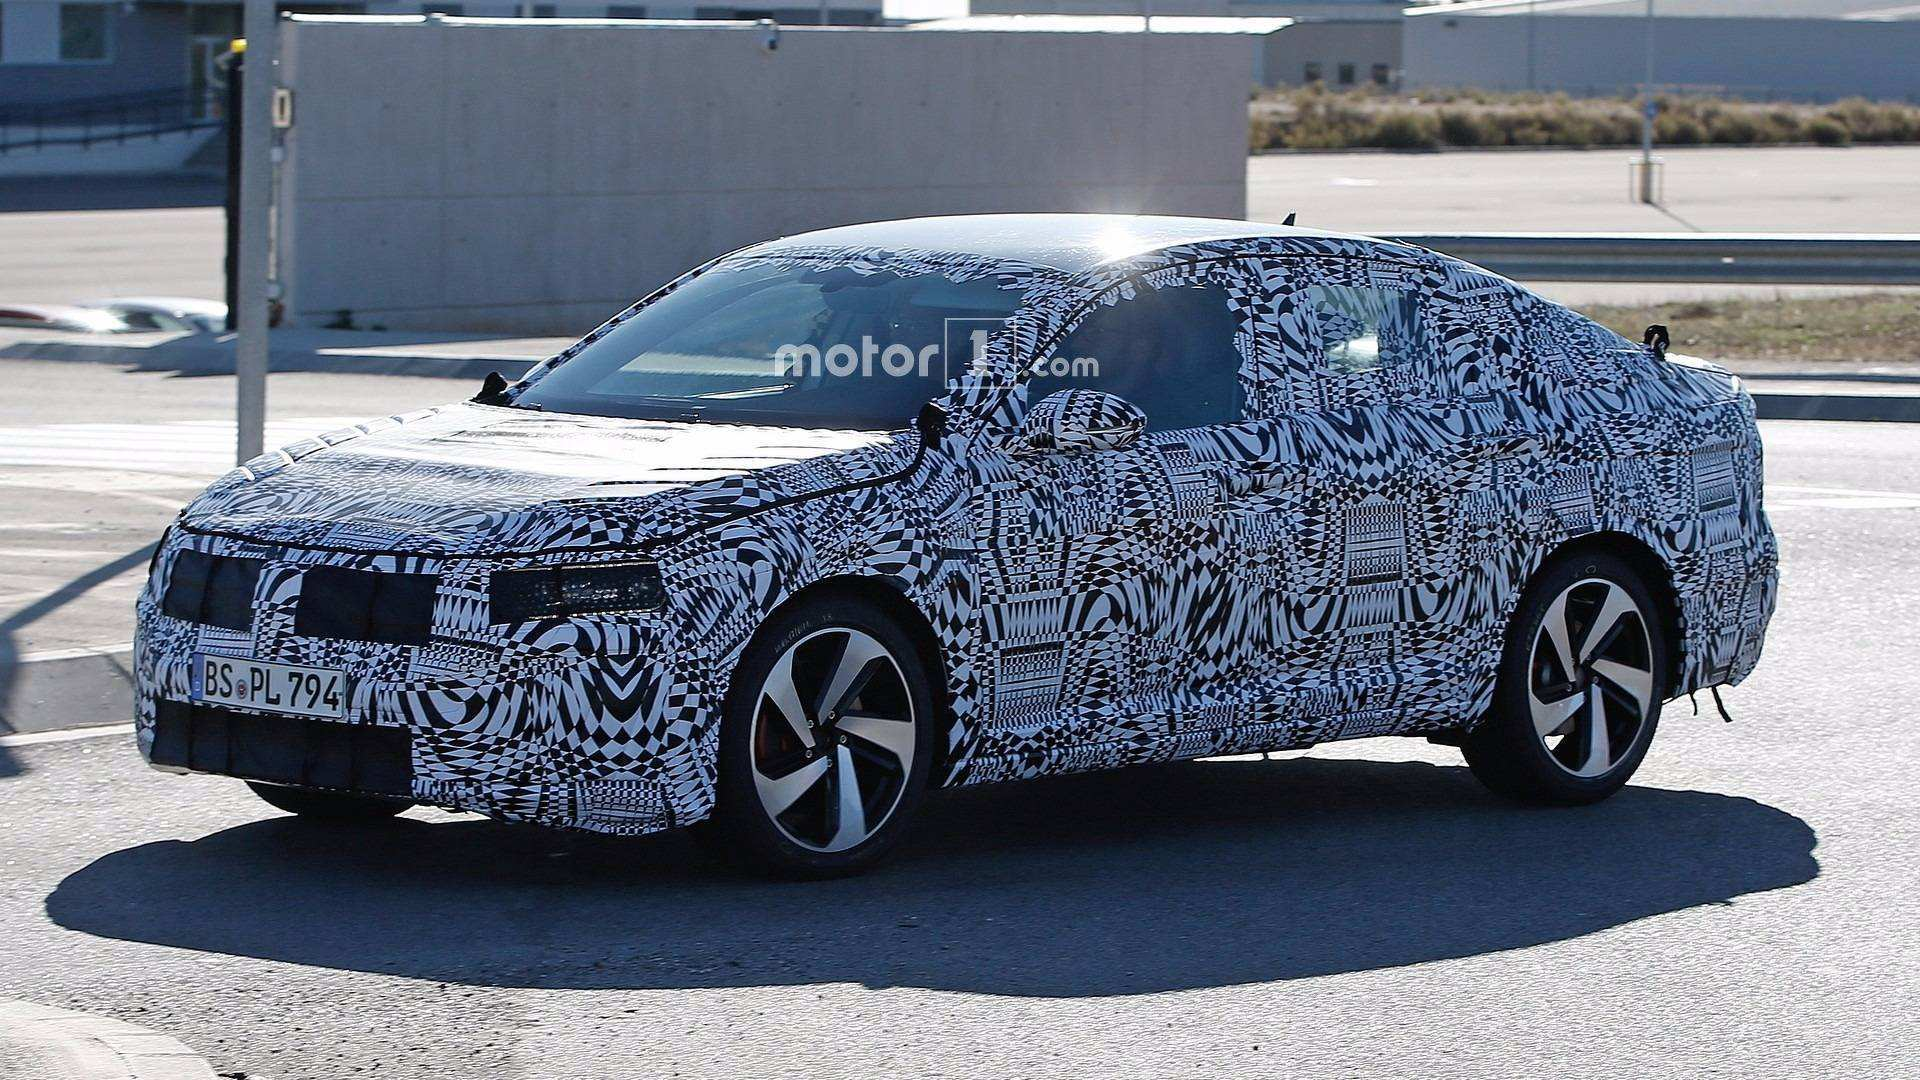 54 New 2019 Vw Jetta Spy Shots Redesign by 2019 Vw Jetta Spy Shots